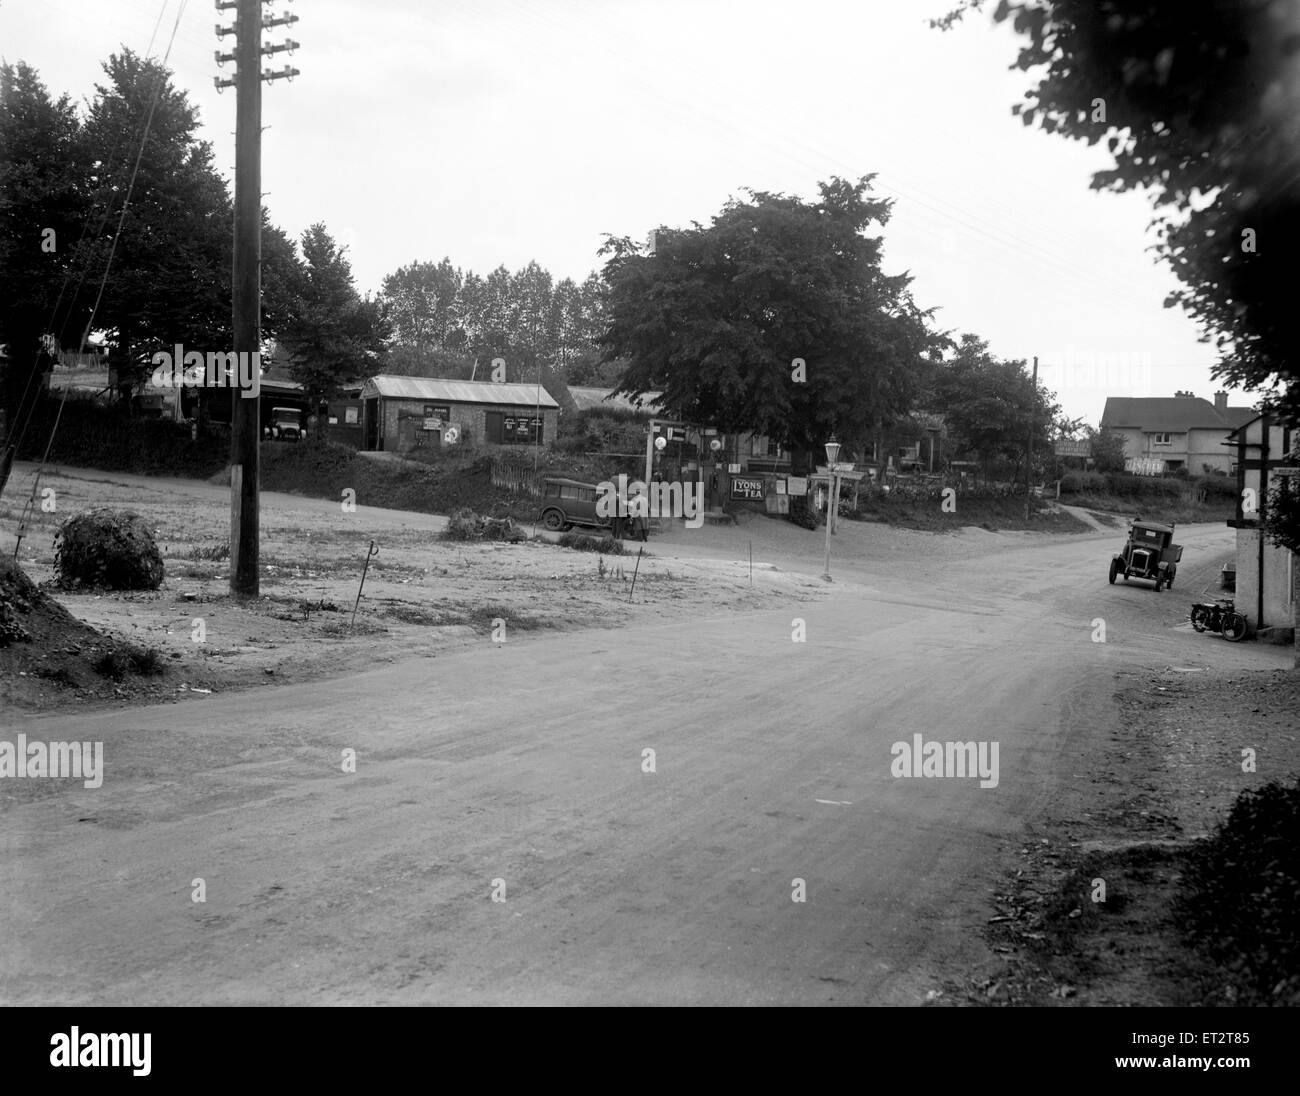 The crossroads at the Pheasant Inn Chalfont St Giles, Buckinghamshire. 17th August 1928 - Stock Image